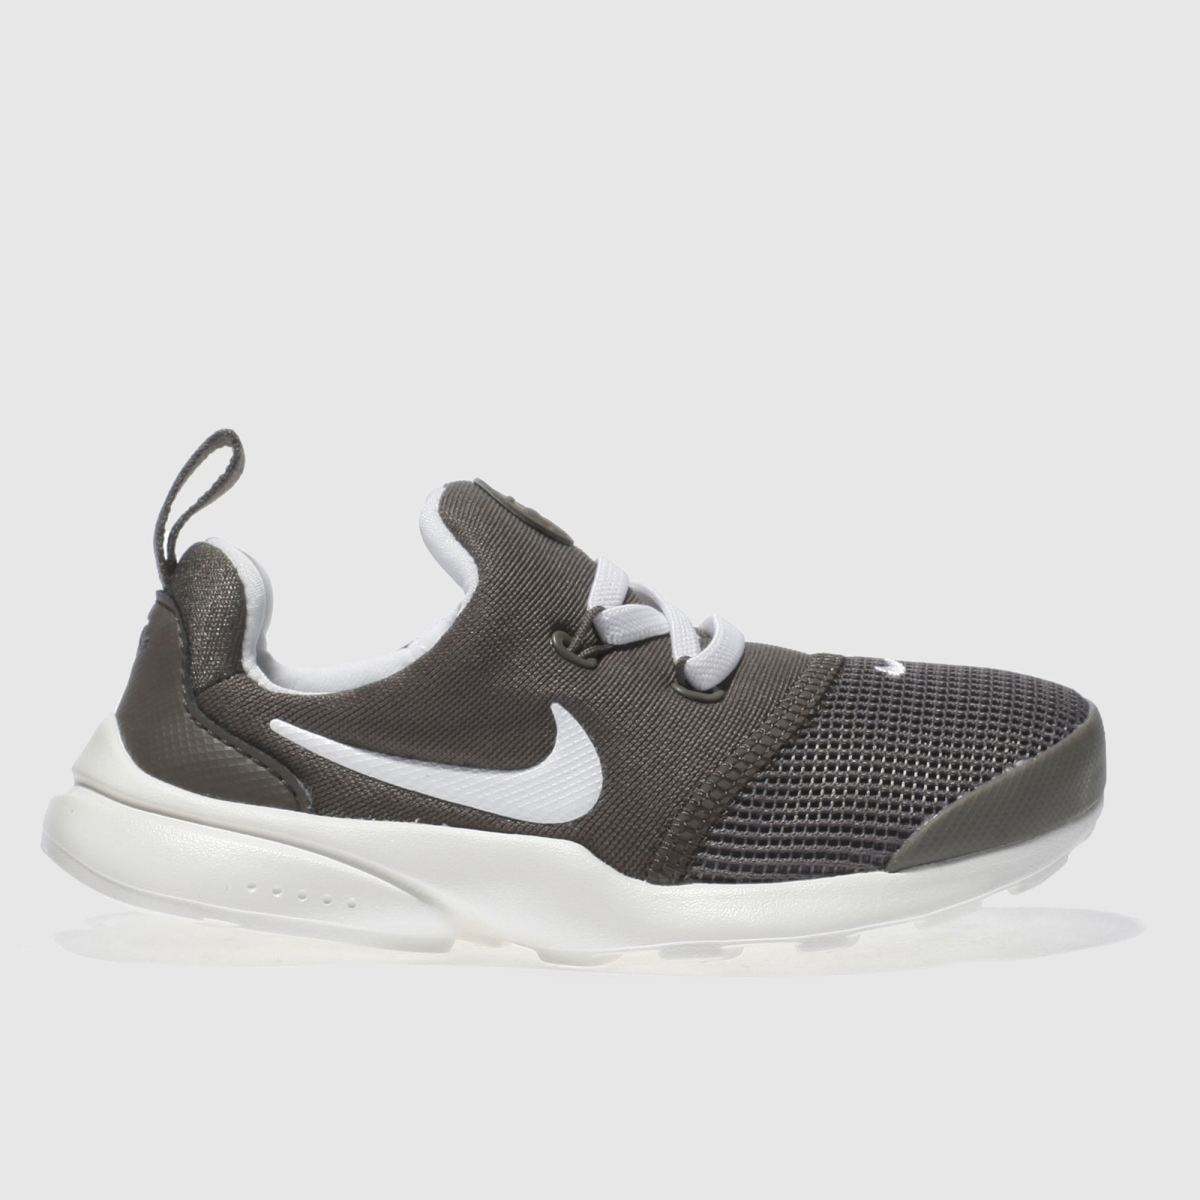 Nike Brown Presto Fly Unisex Toddler Toddler